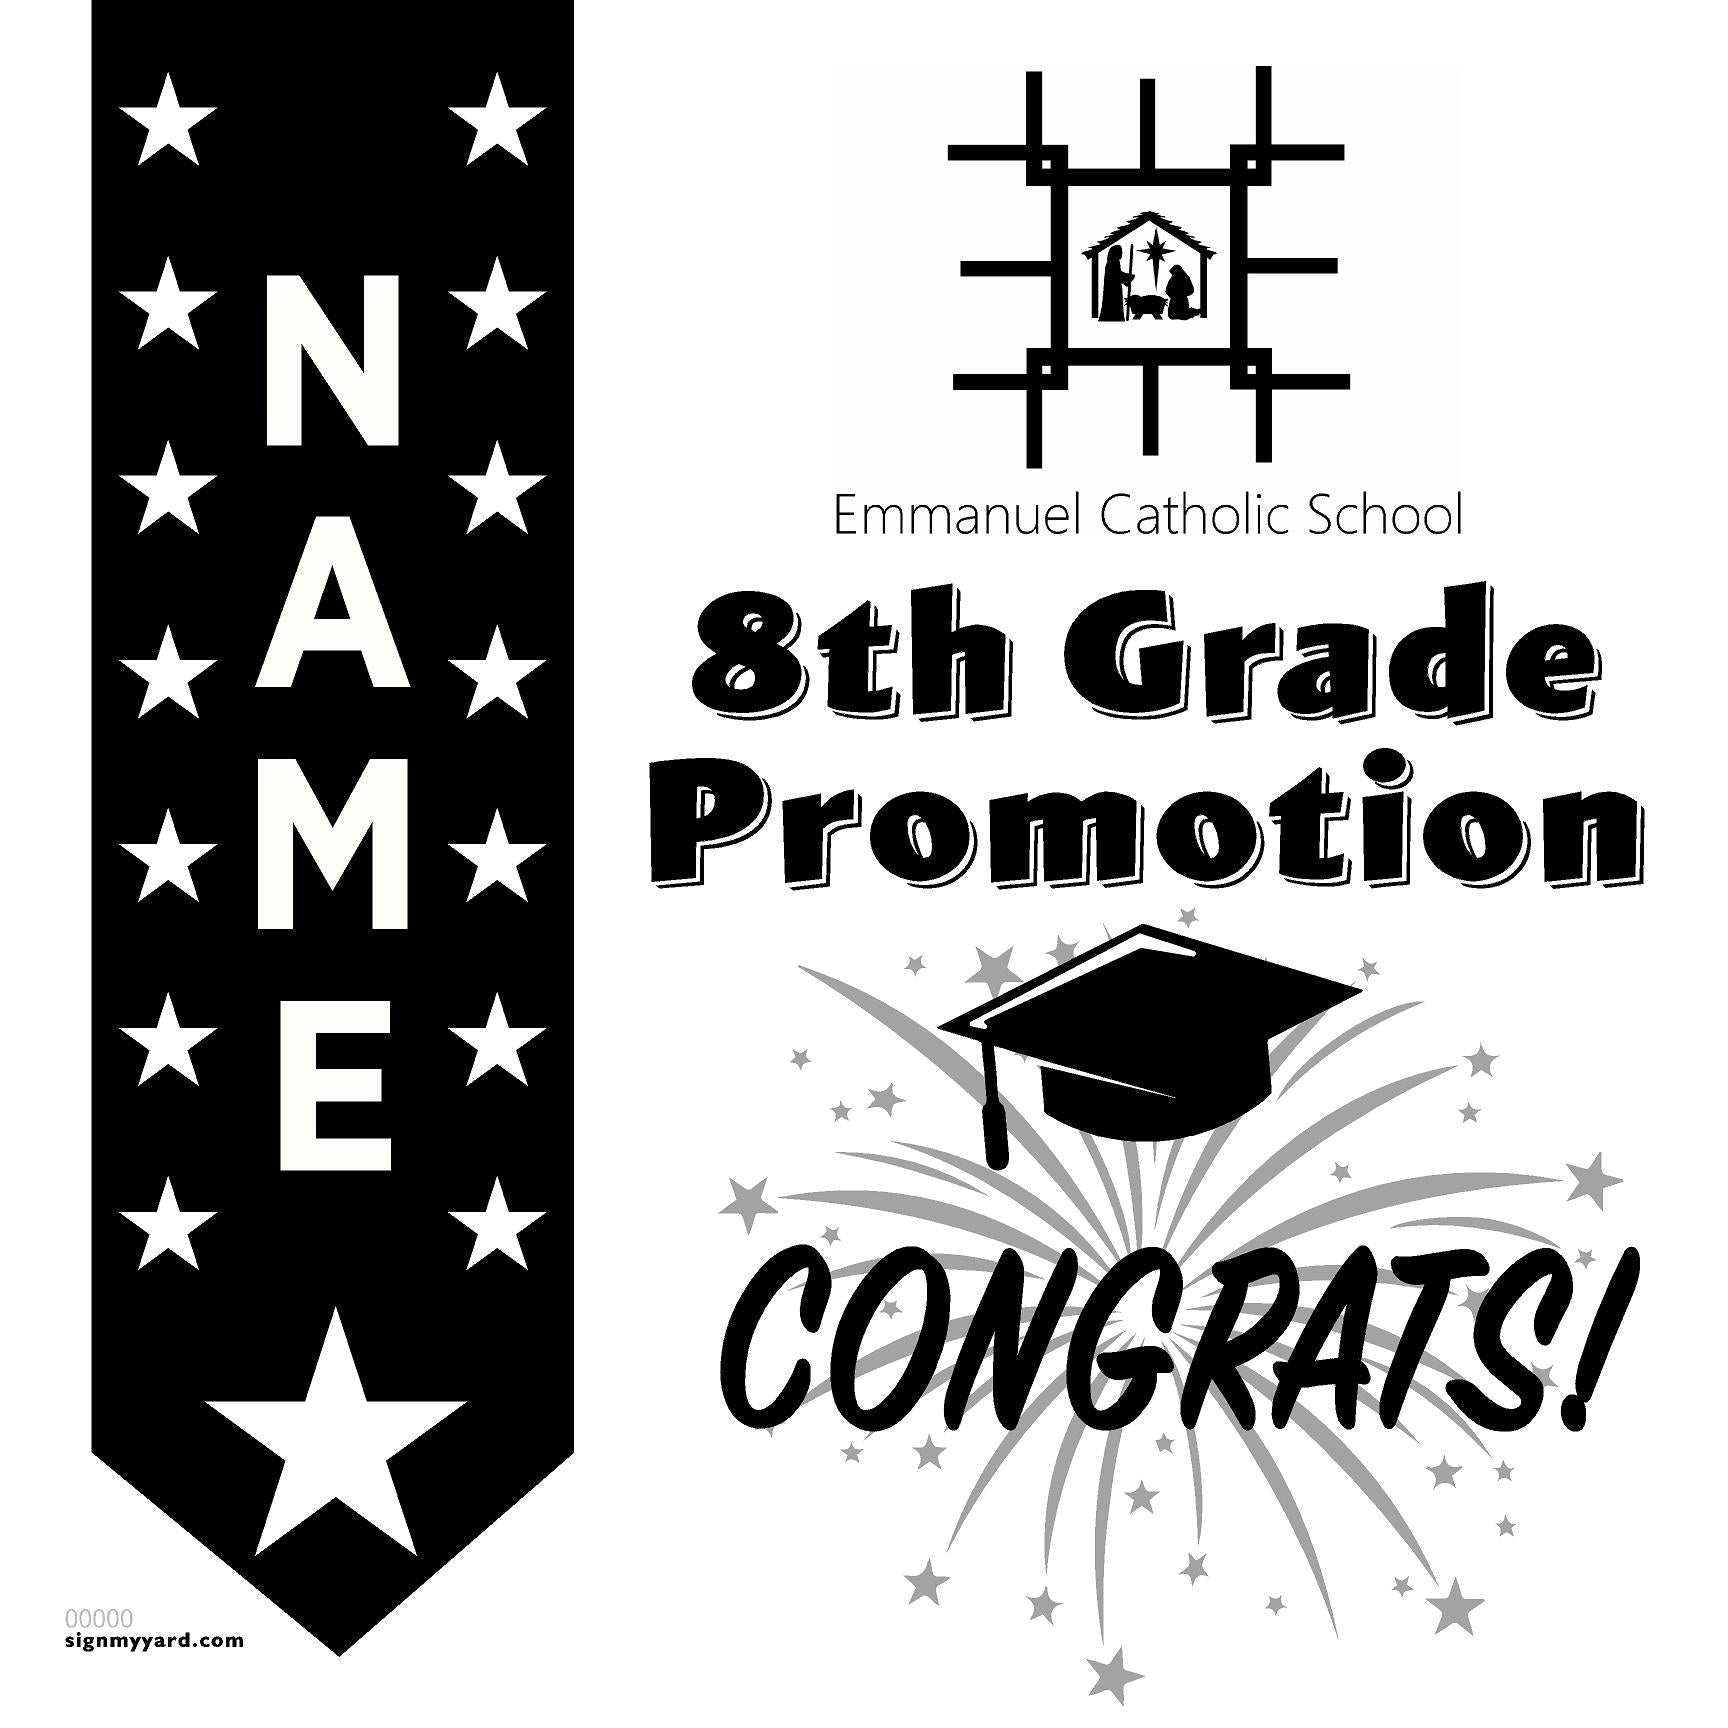 Emmanuel Catholic School 8th Grade Promotion 24x24 #shineon2024 Yard Sign (Option B)